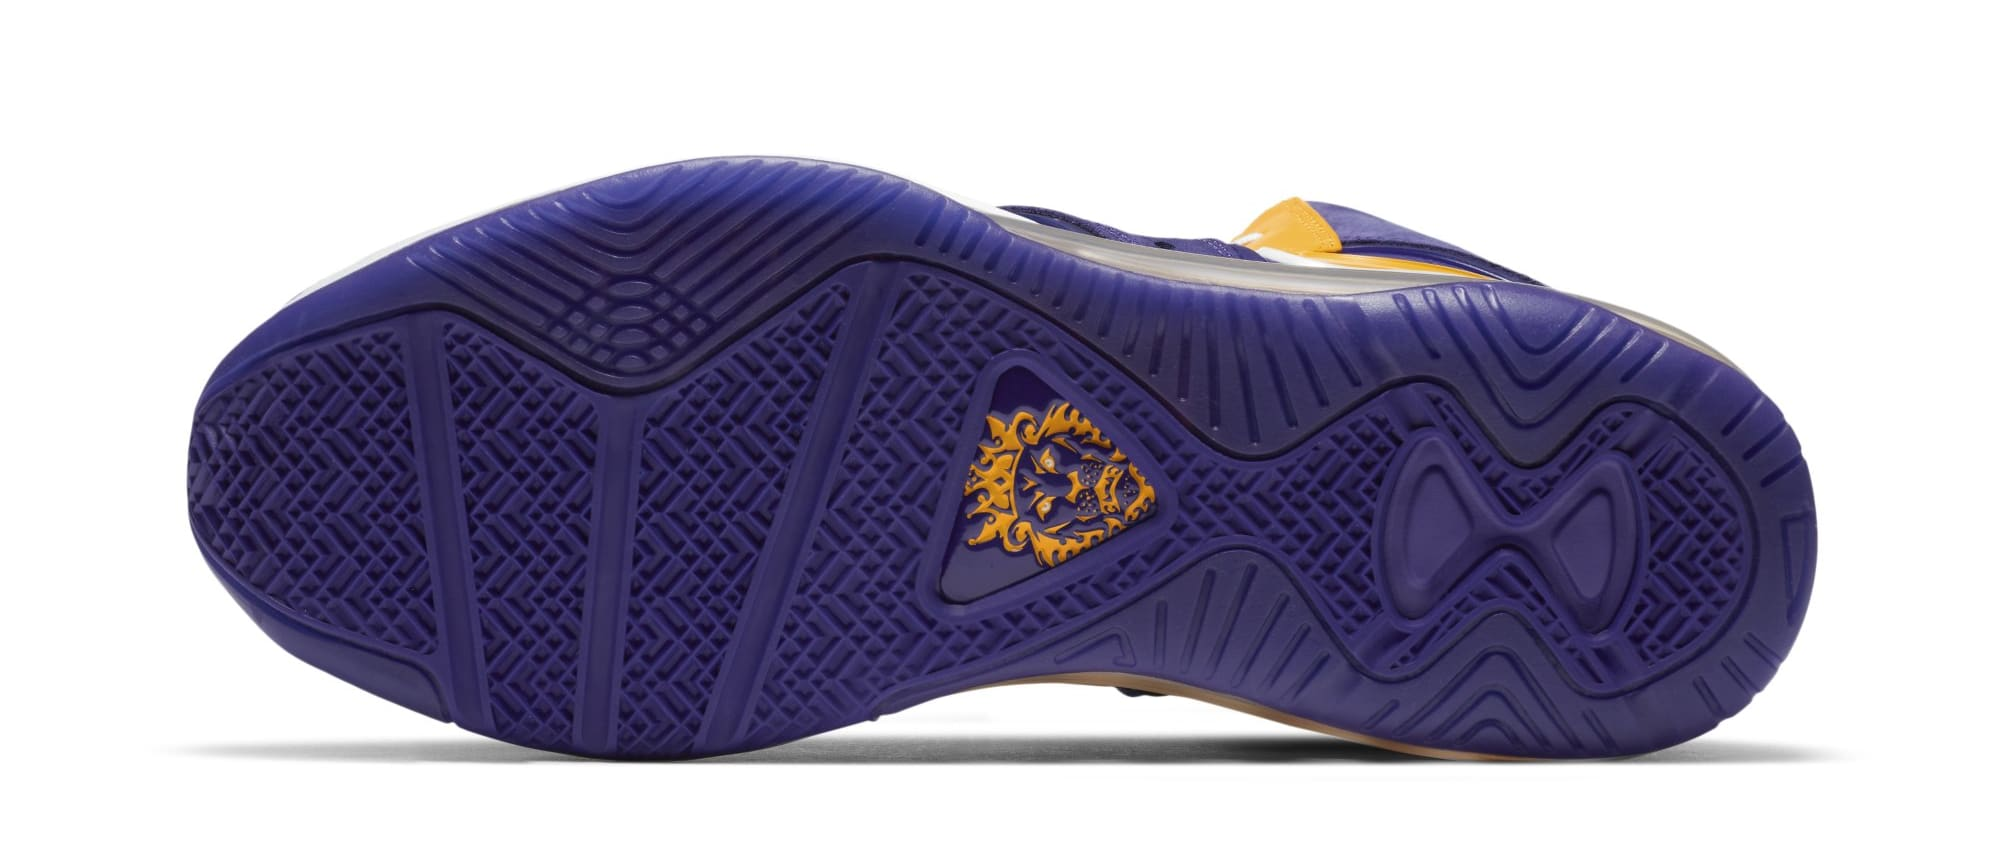 Nike LeBron 8 'Lakers' DC8380-500 (Sole)